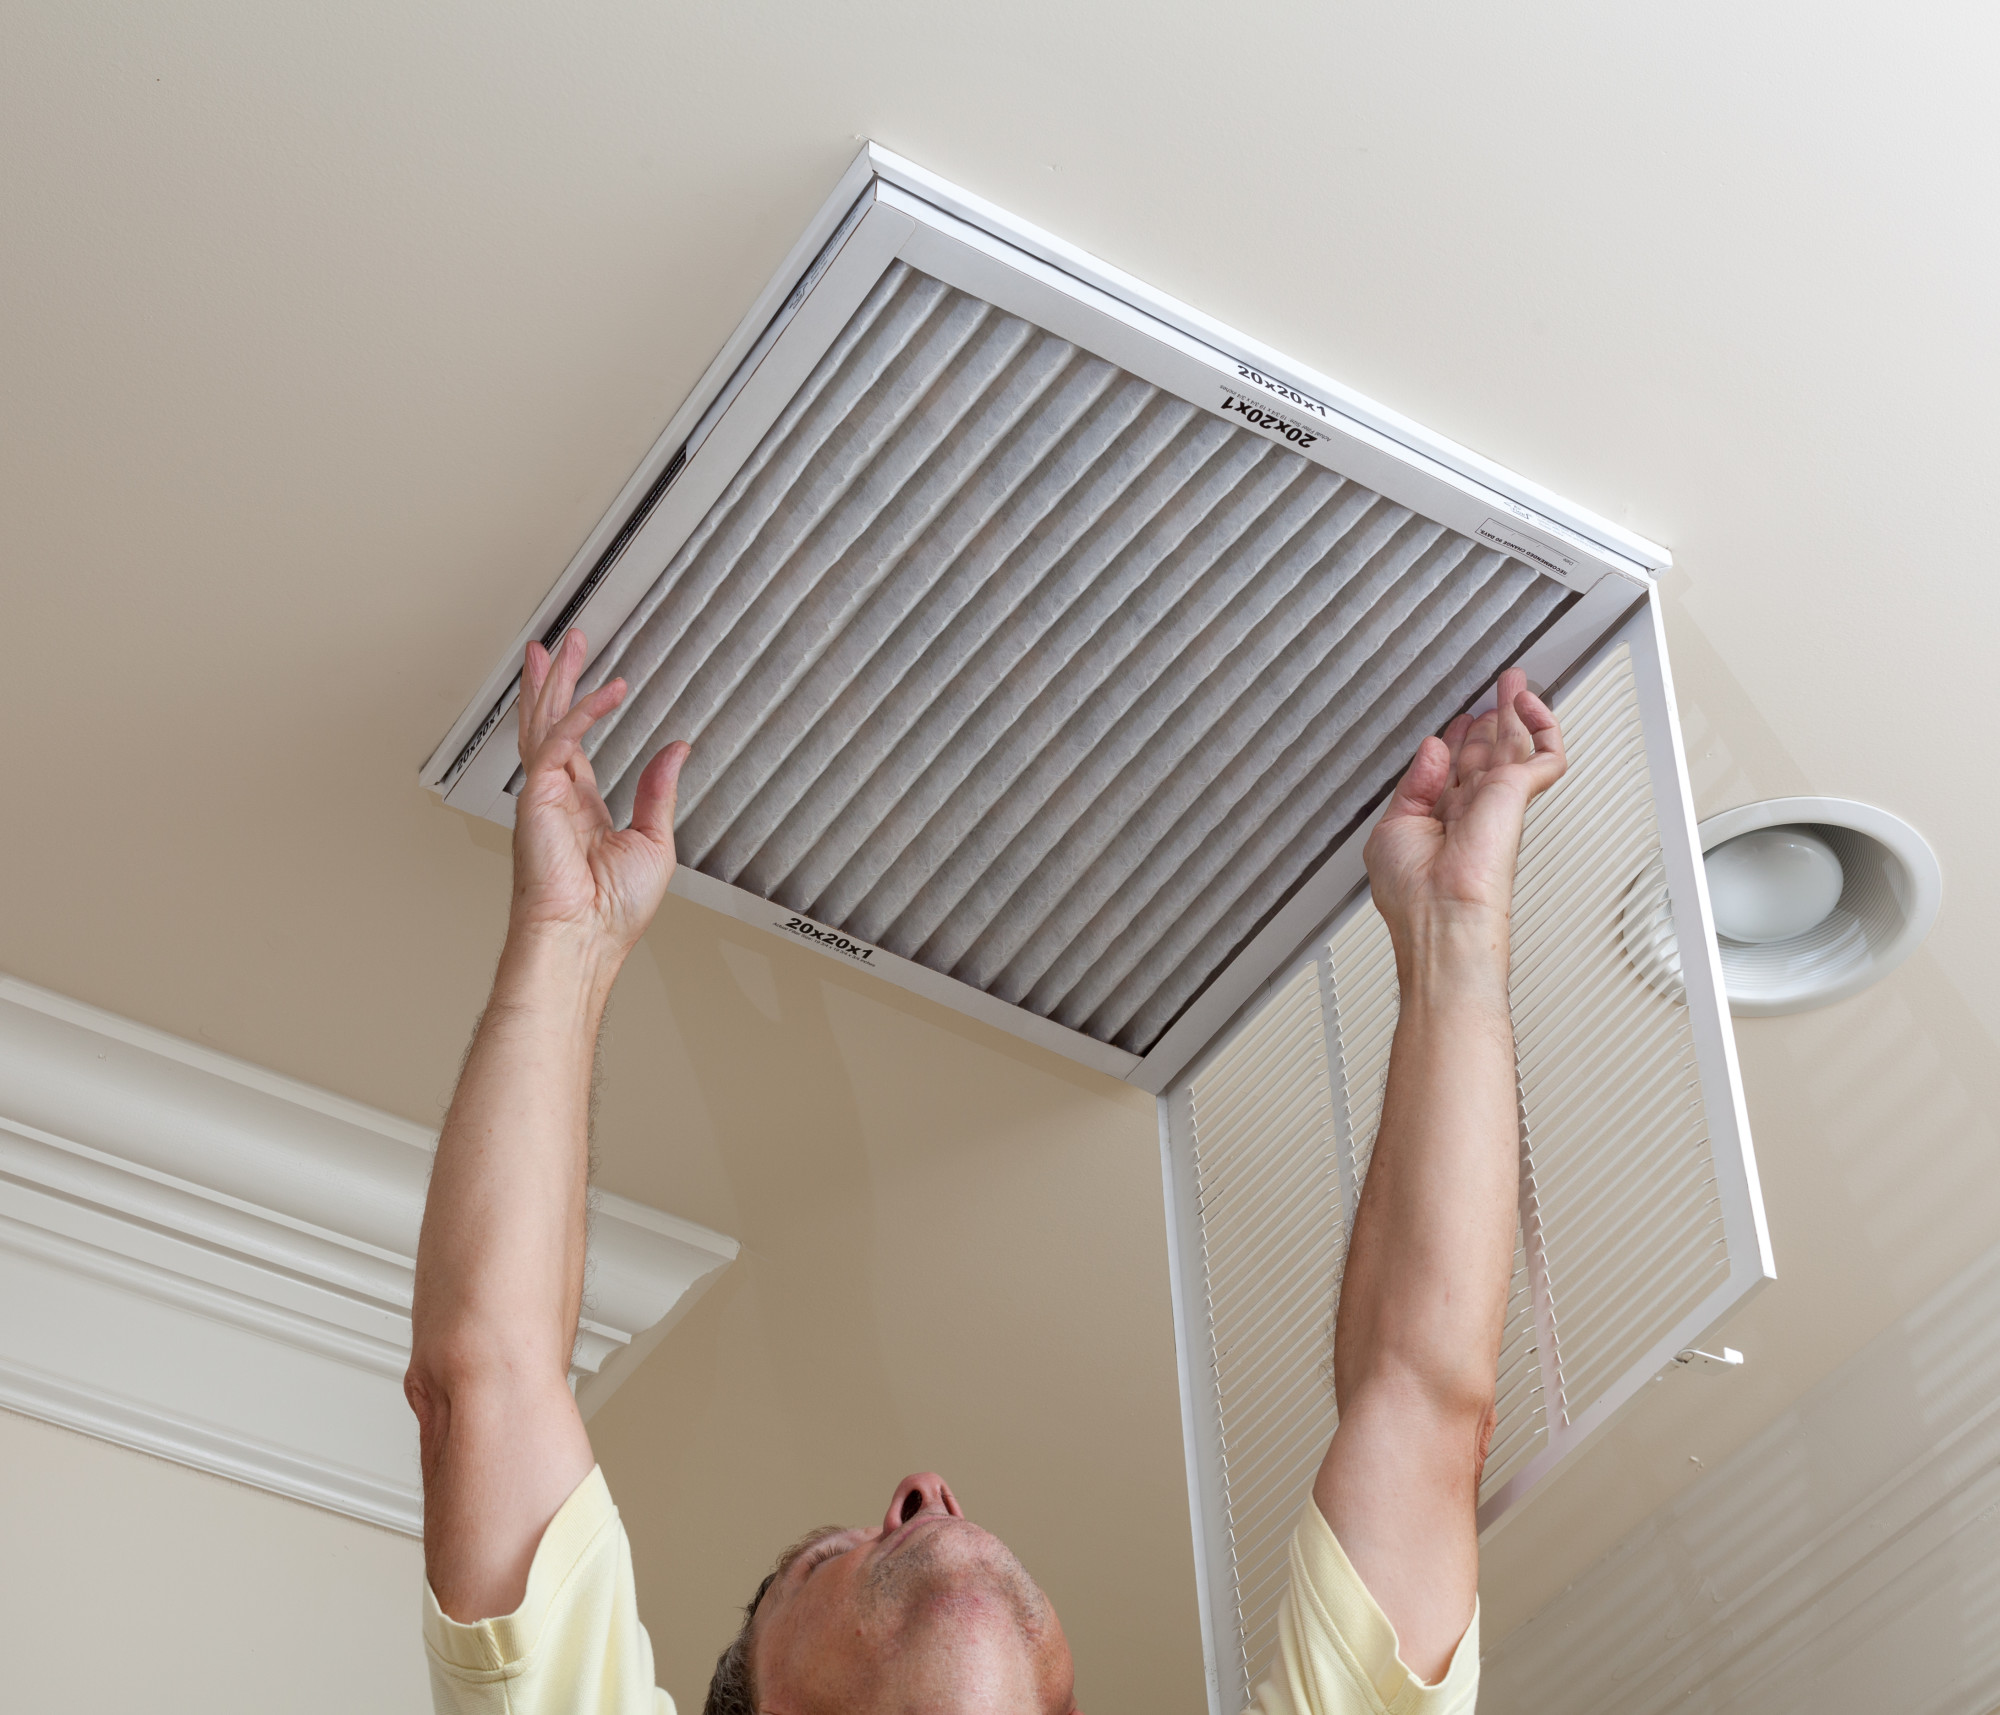 3 Things to Do When Your Air Conditioner Smells Bad